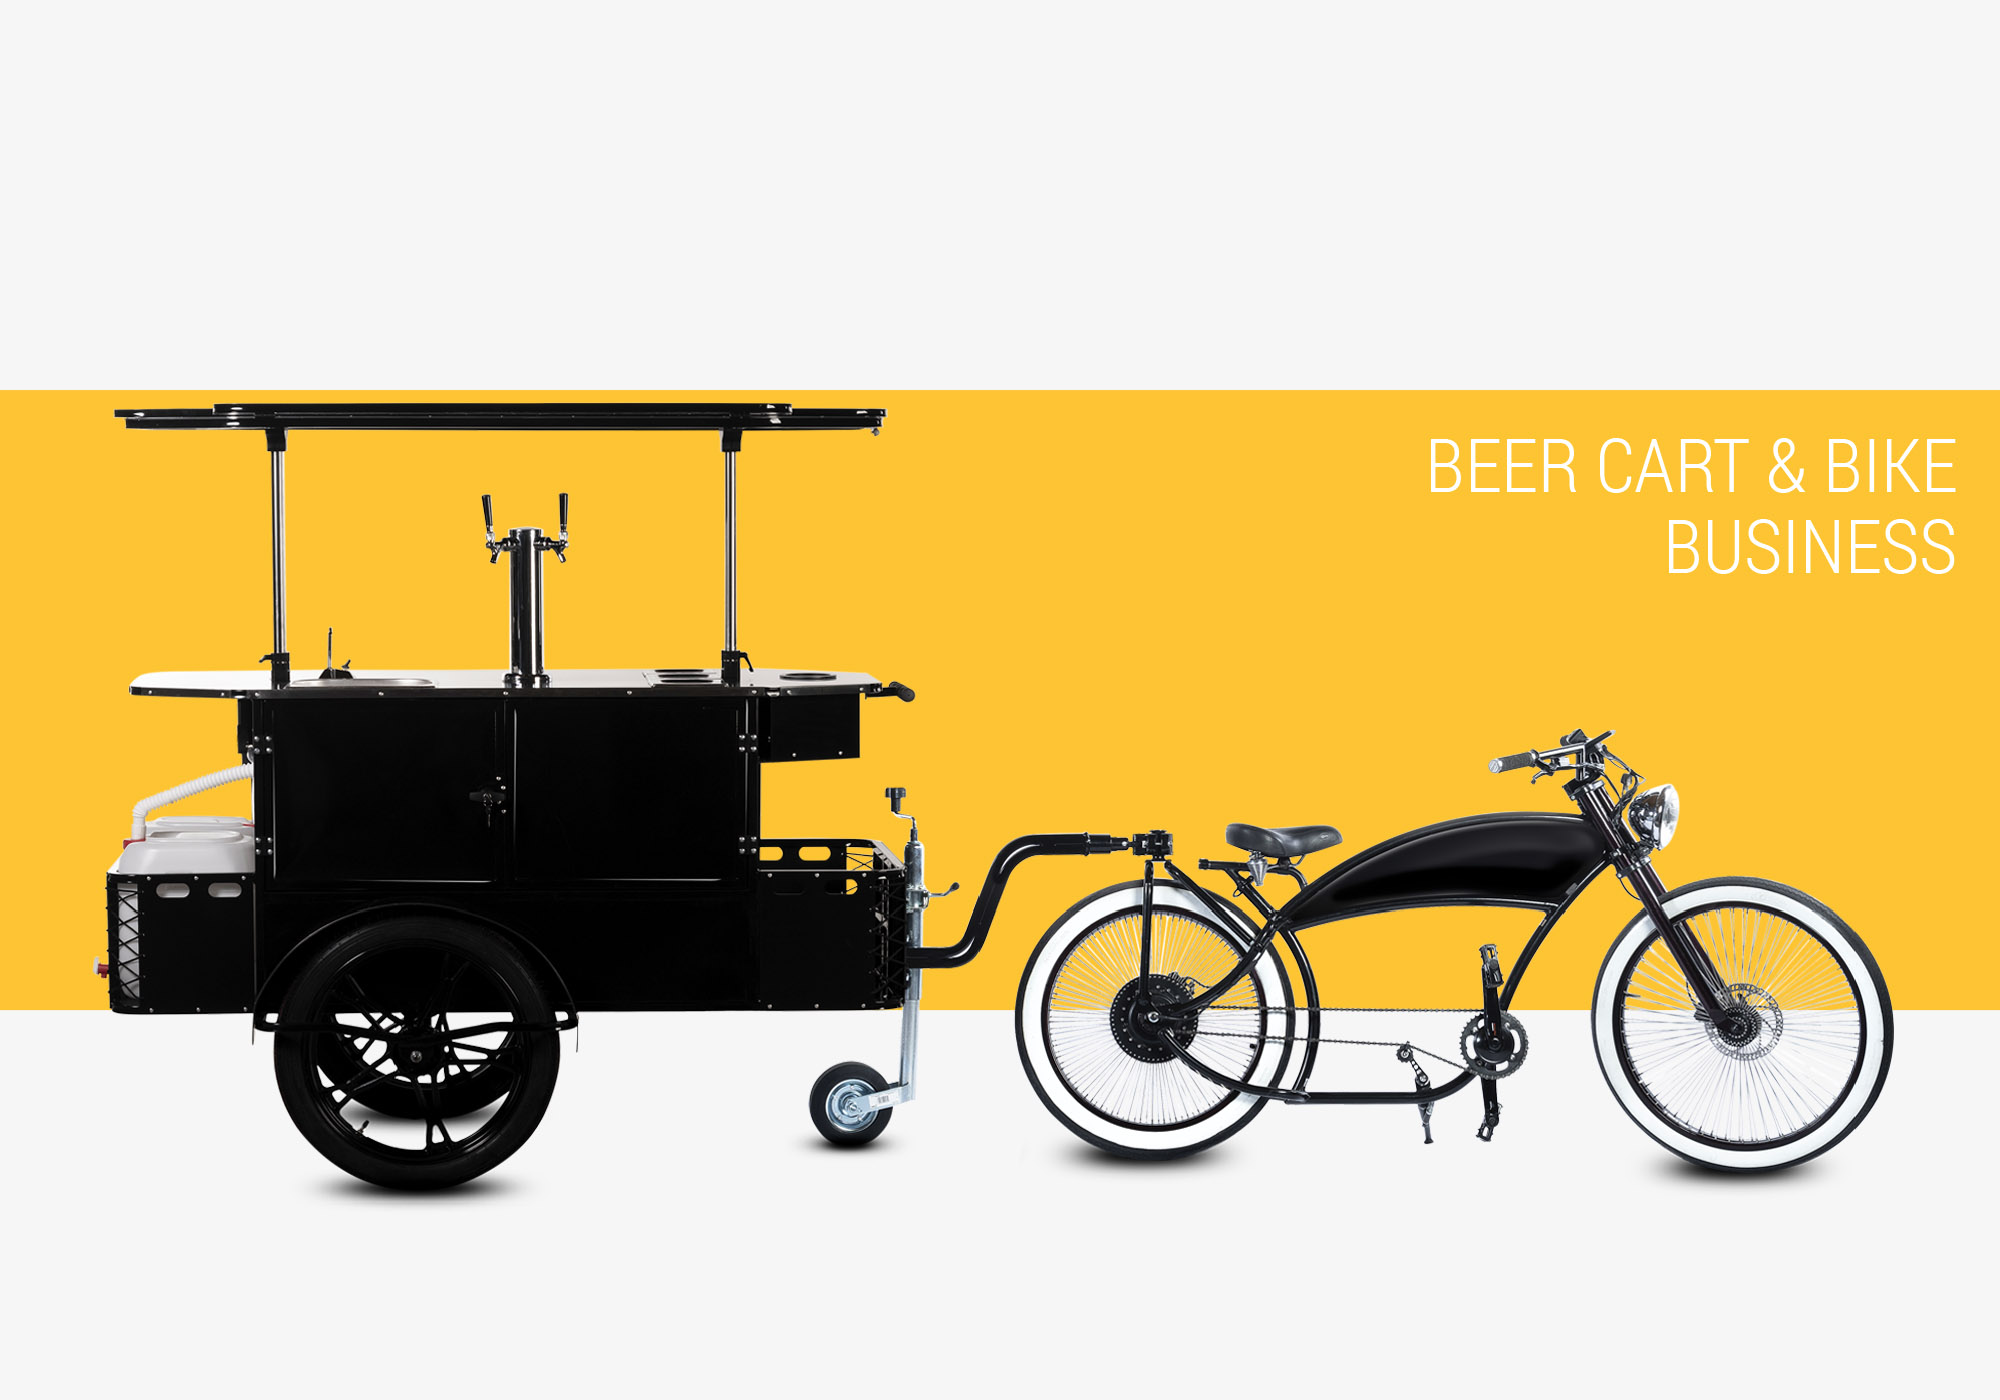 Beer cart and beer bike business Bizz On Wheels